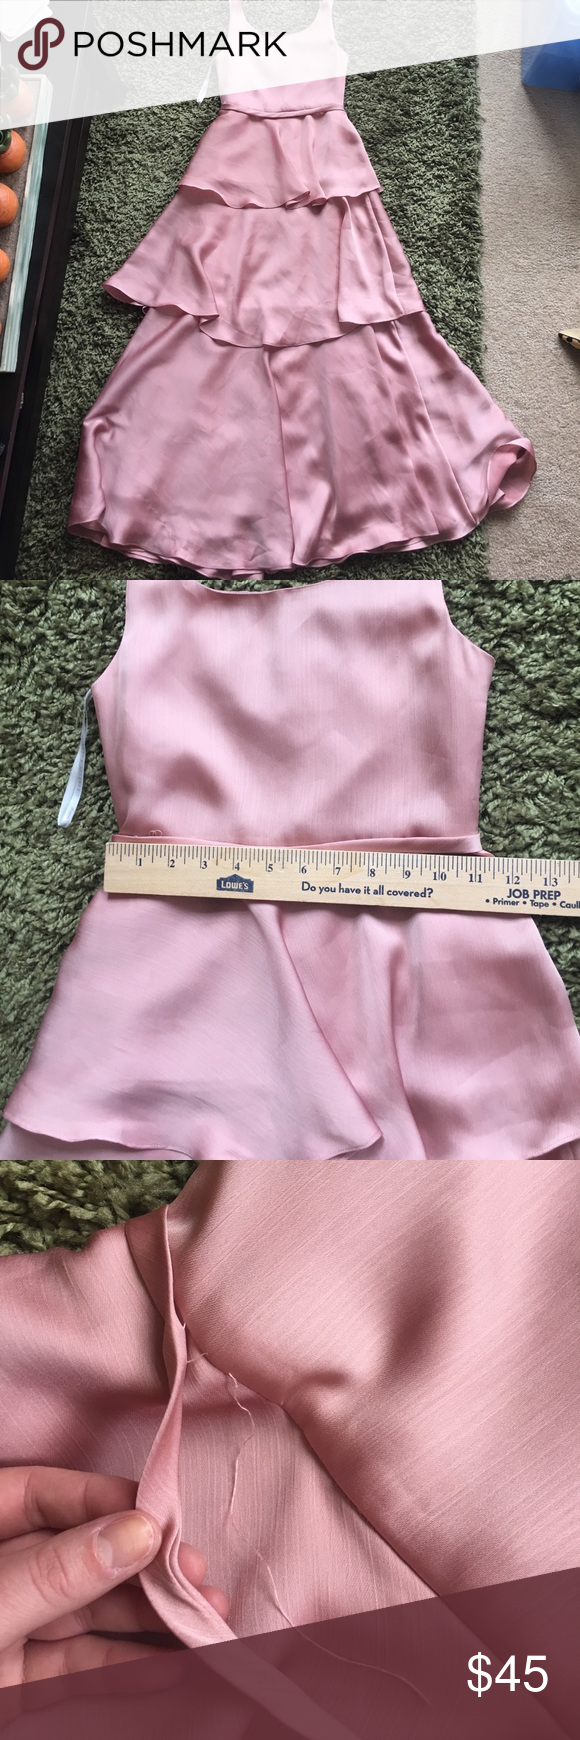 Rose junior bridesmaid gown NWT | Disney dresses, Gowns and Rose